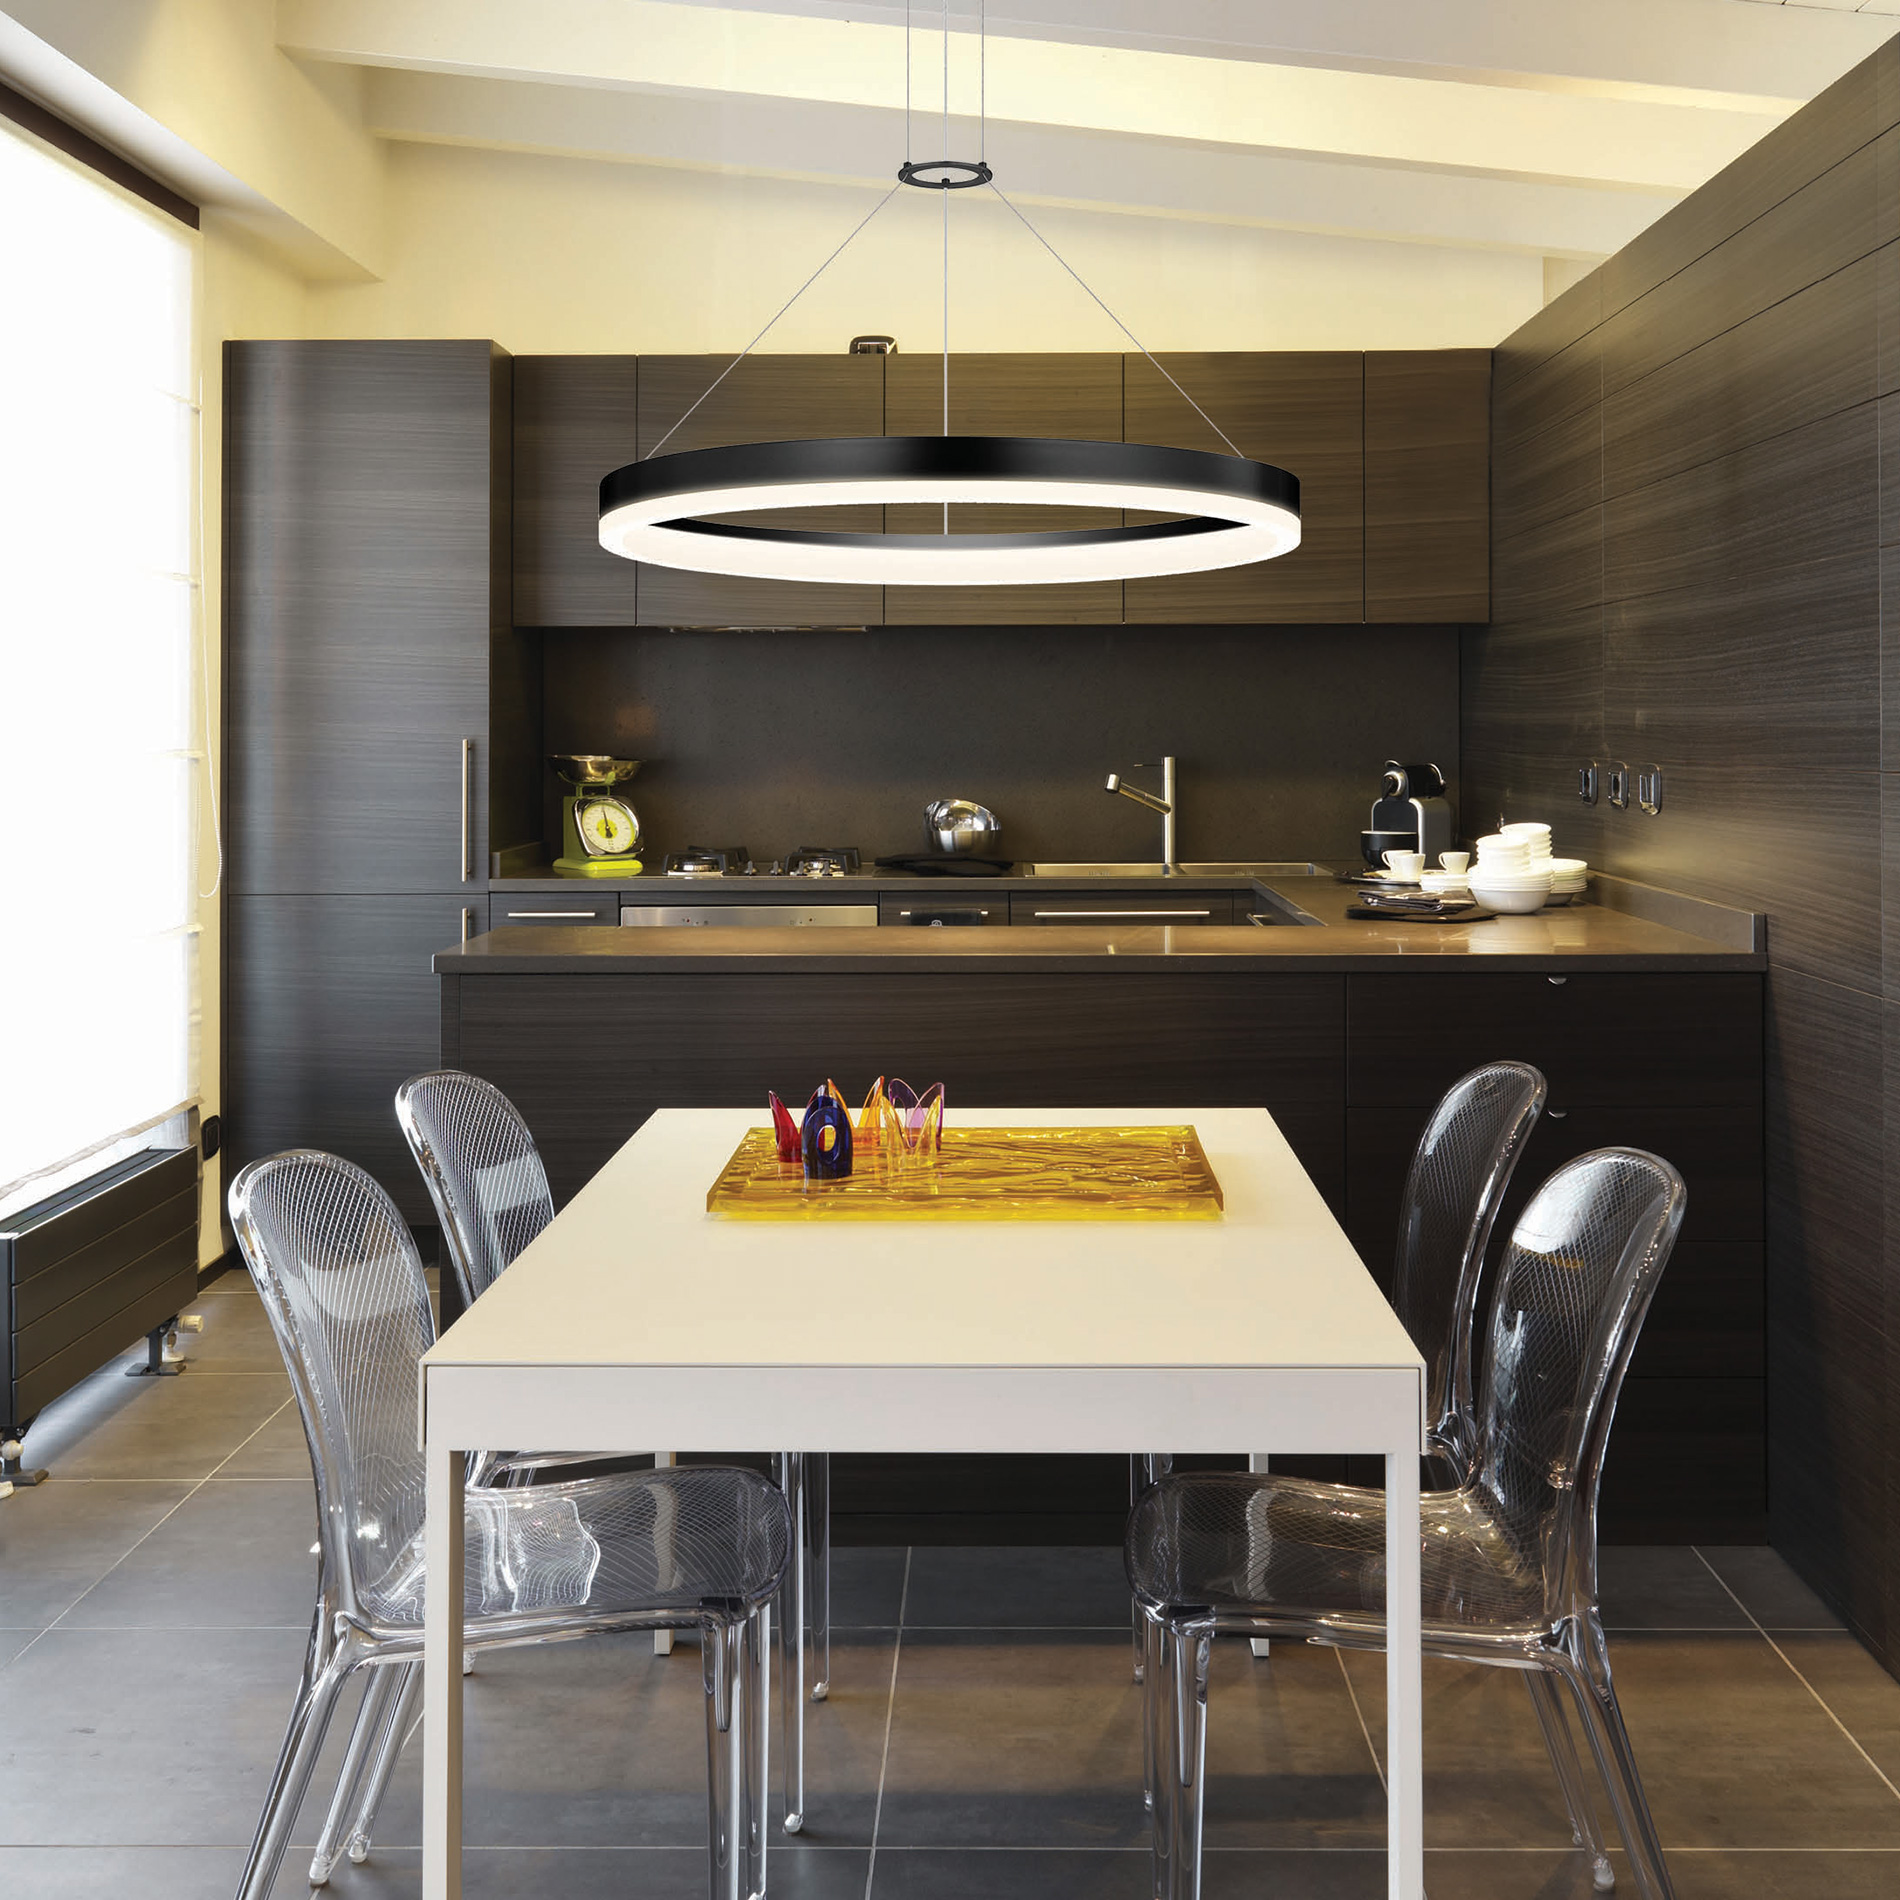 Kitchen Dining Lighting Ideas: Linear LED Light: Ideal For Office, Dinning Room, Interior Lighting And Decoration